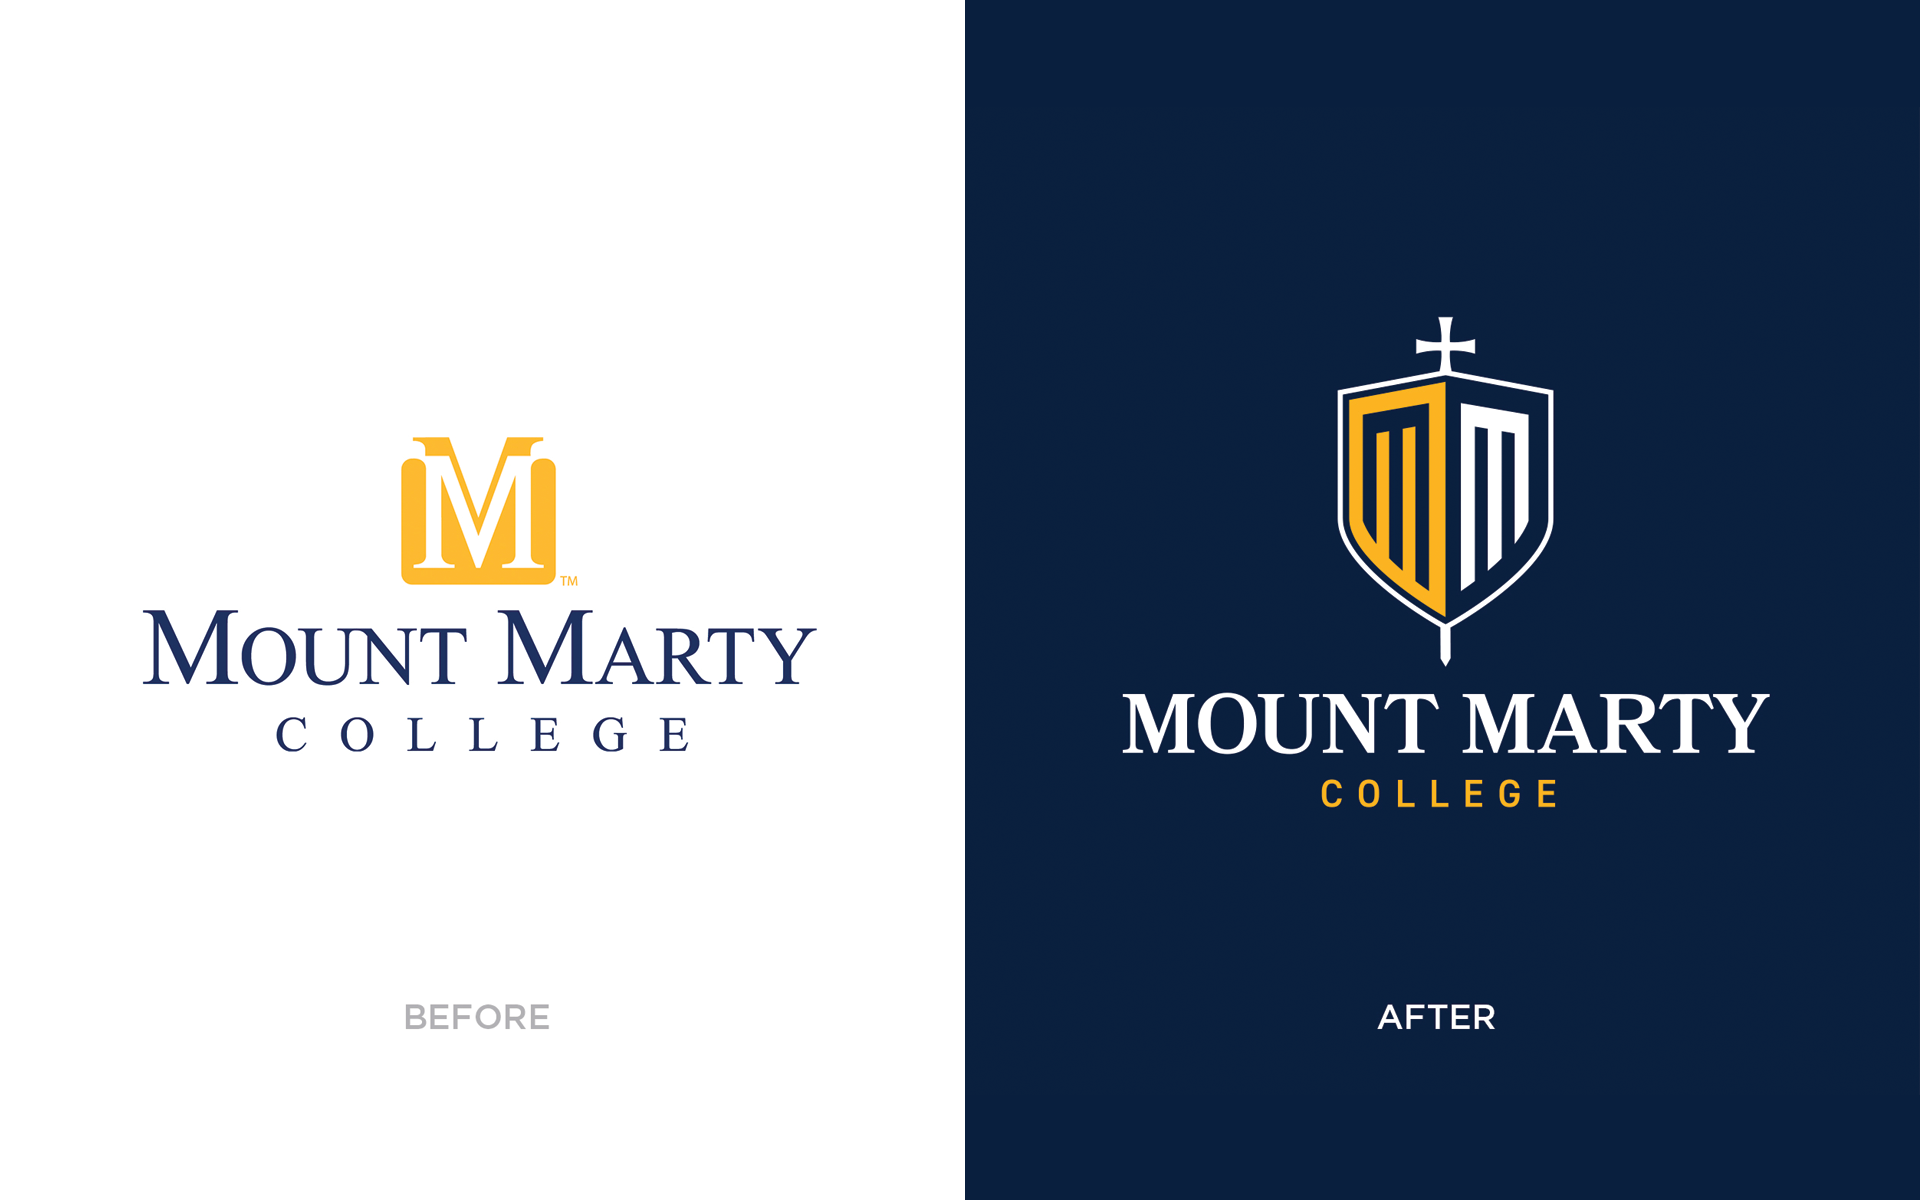 mount marty before and after